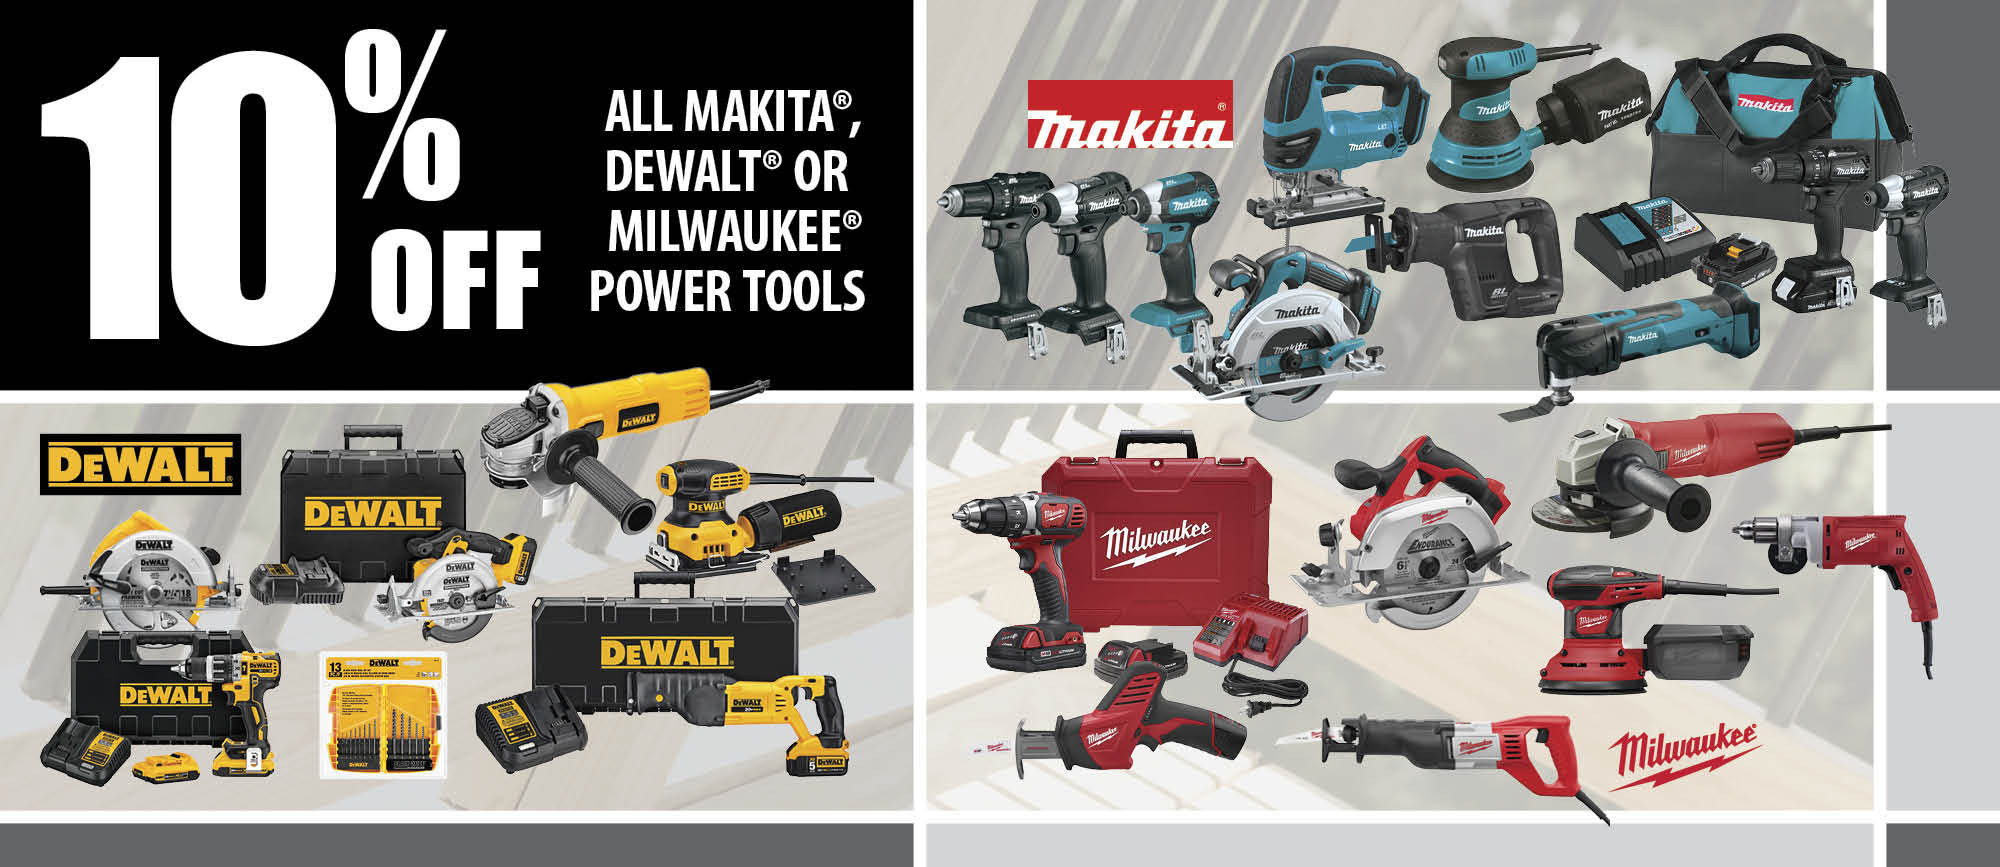 10% off ALL MAKITA®, DeWALT® & MILWAUKEE® POWER TOOLS